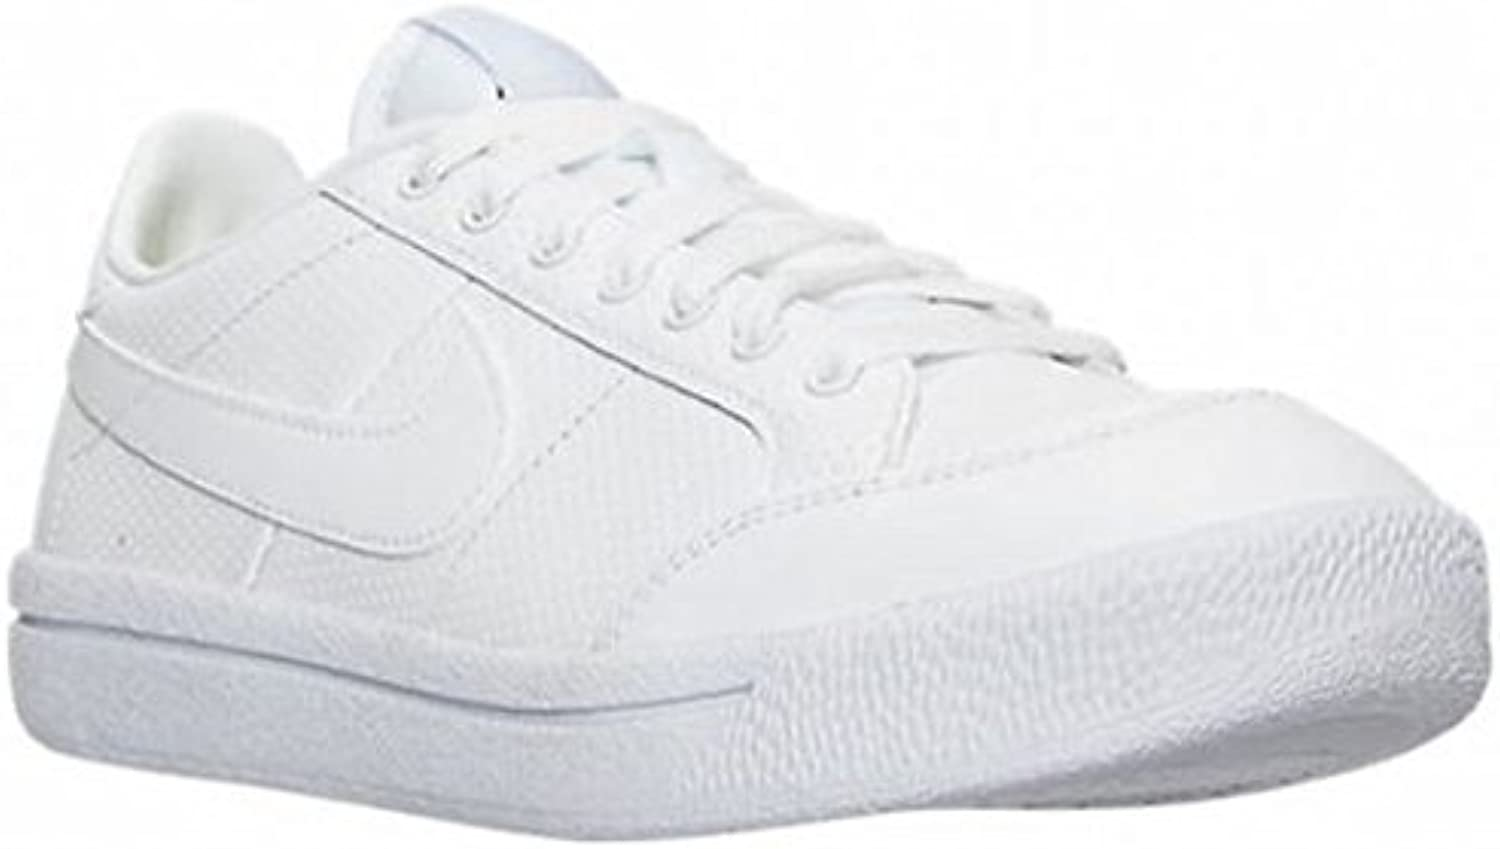 Nike Mens Meadow 16 LTR Leather Low Top Lace Up Running Sneaker